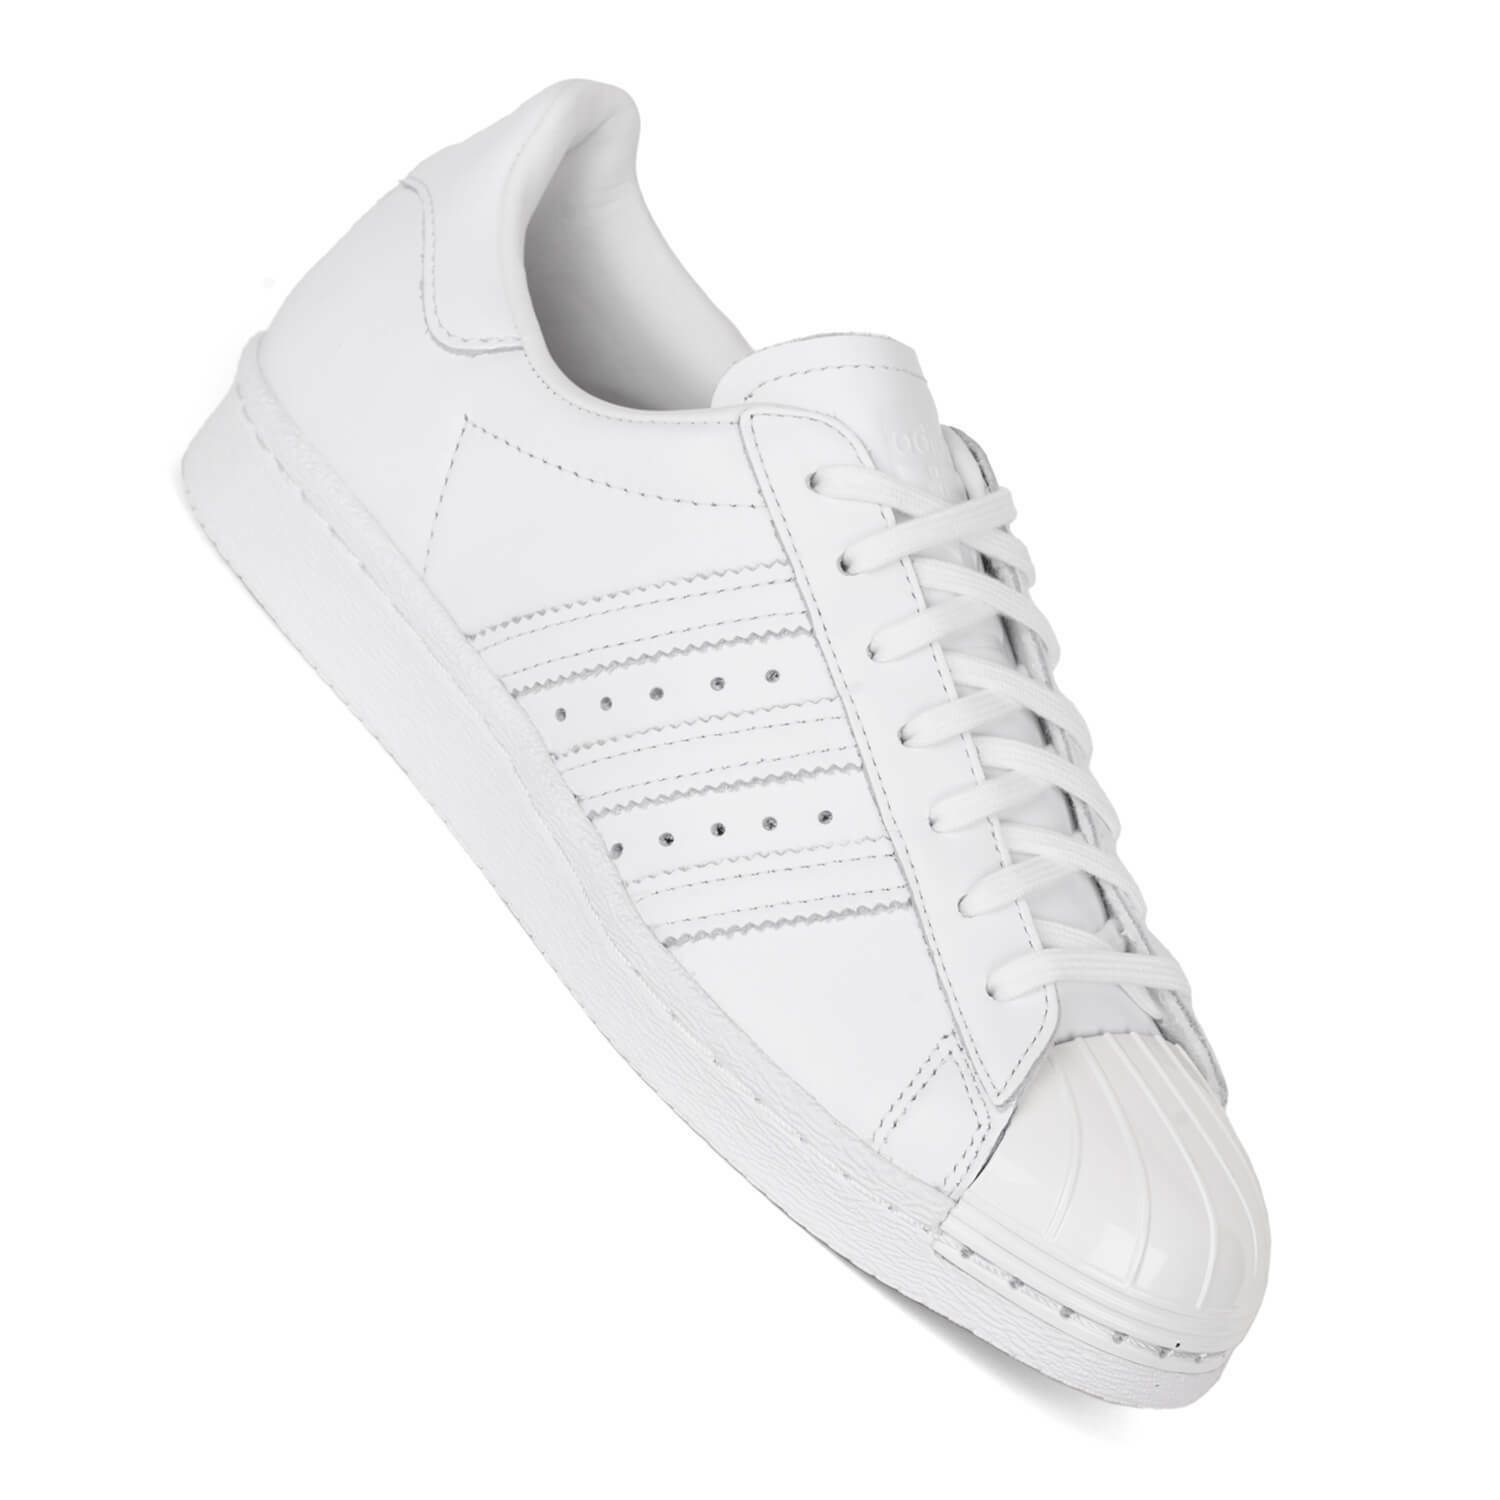 adidas superstar white ladies